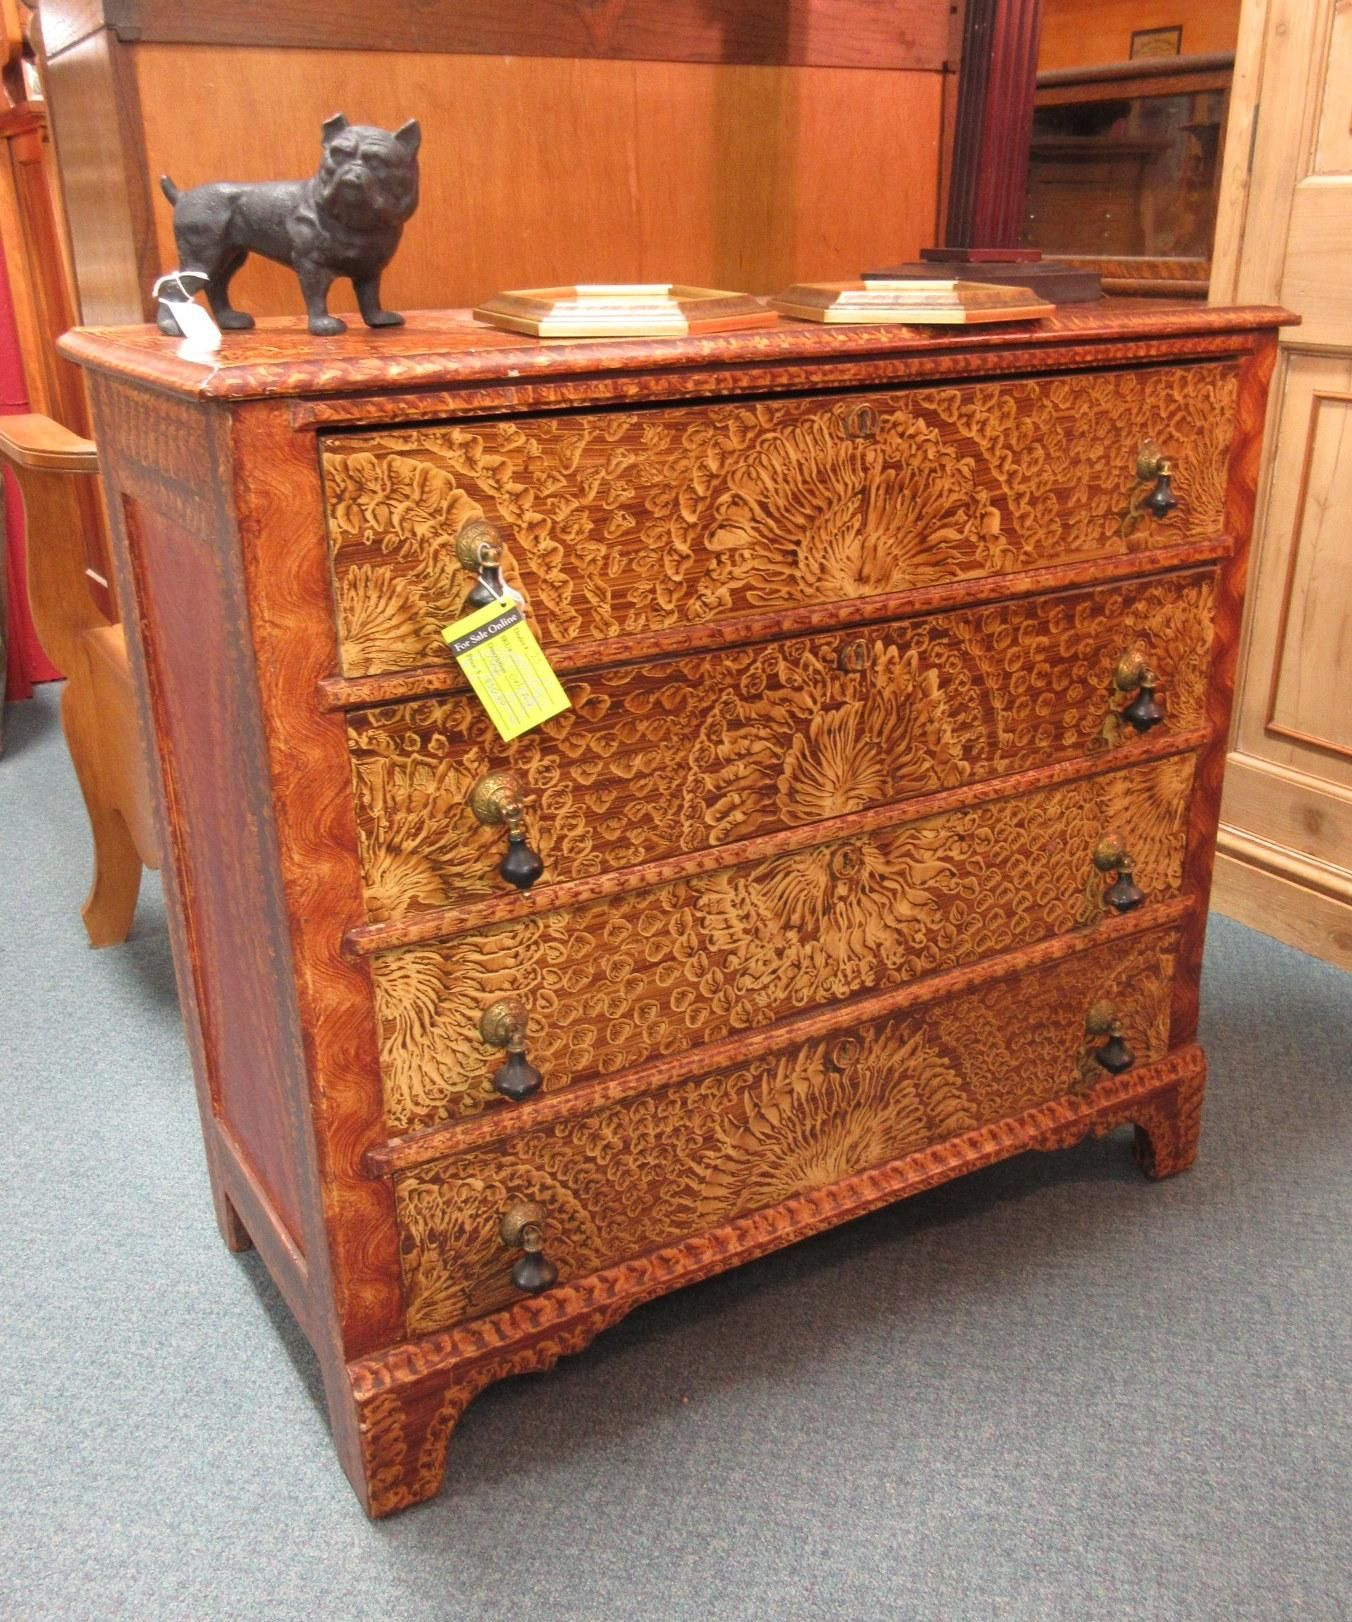 Drawers - Early Faux Chest Of Drawers. From Vendor 25 In Booth 249. Priced At